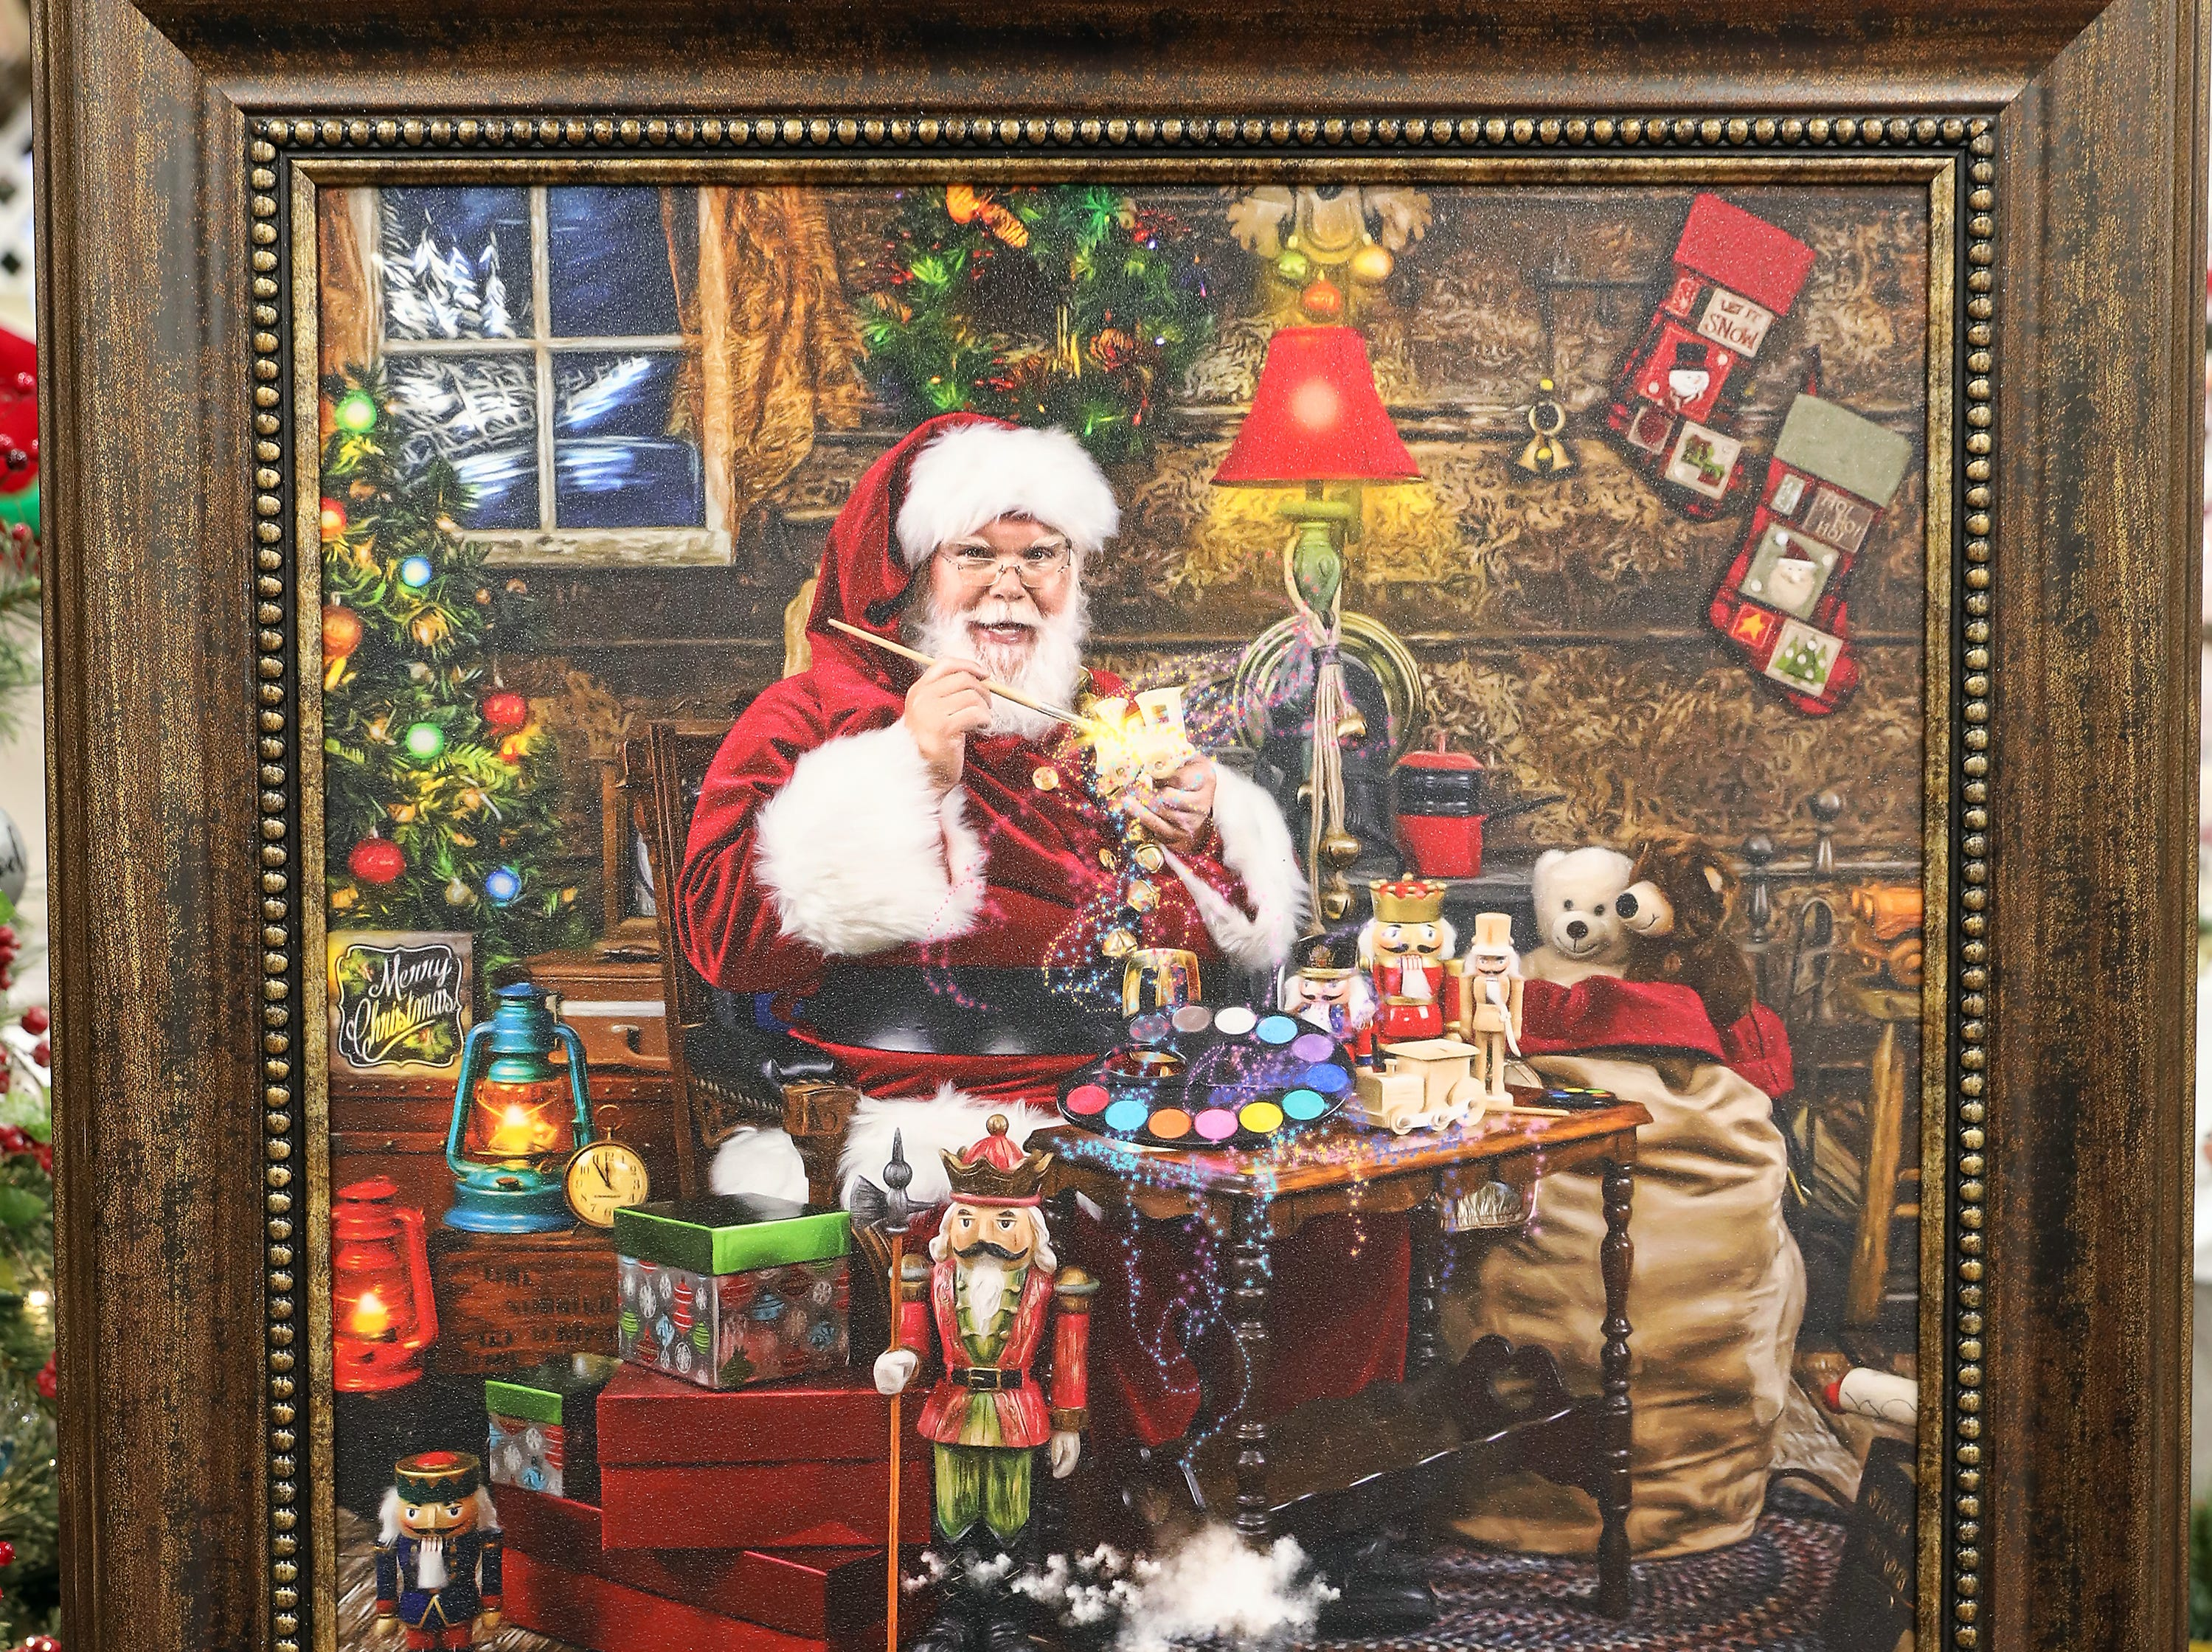 146	2:45 PM	Power Portraits	Other	Santa's Storybook Workshop	Fine Art Wall Portrait - Custom Framing, ready to hang.		$100 gift certificate to be used towards a Santa's Storybook Workshop Session at Power Portraits Studio located in Blue Rock, Ohio.  ($400 session)